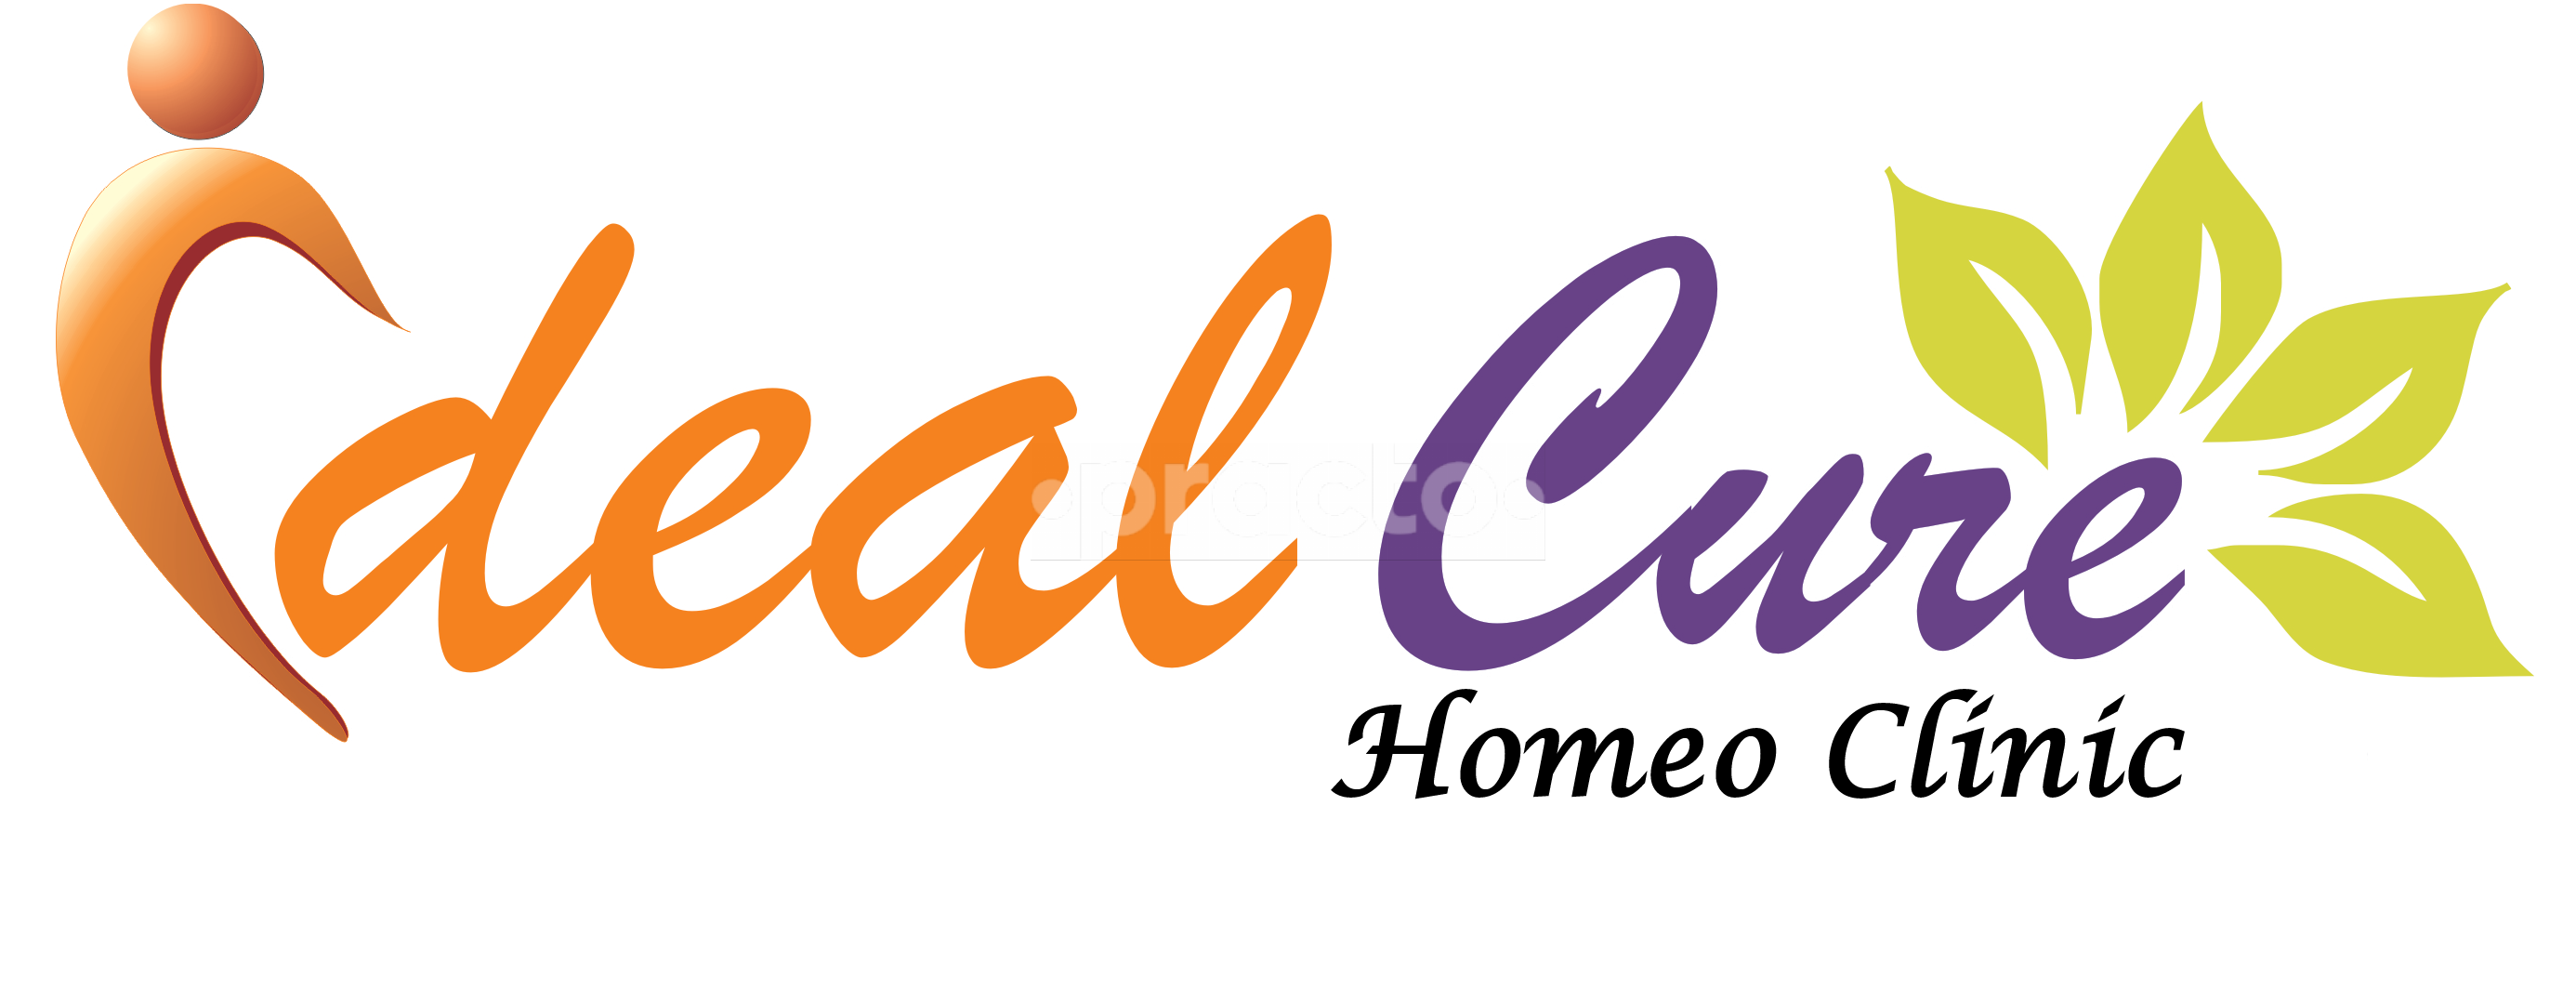 Ideal Cure Homeo Clinic